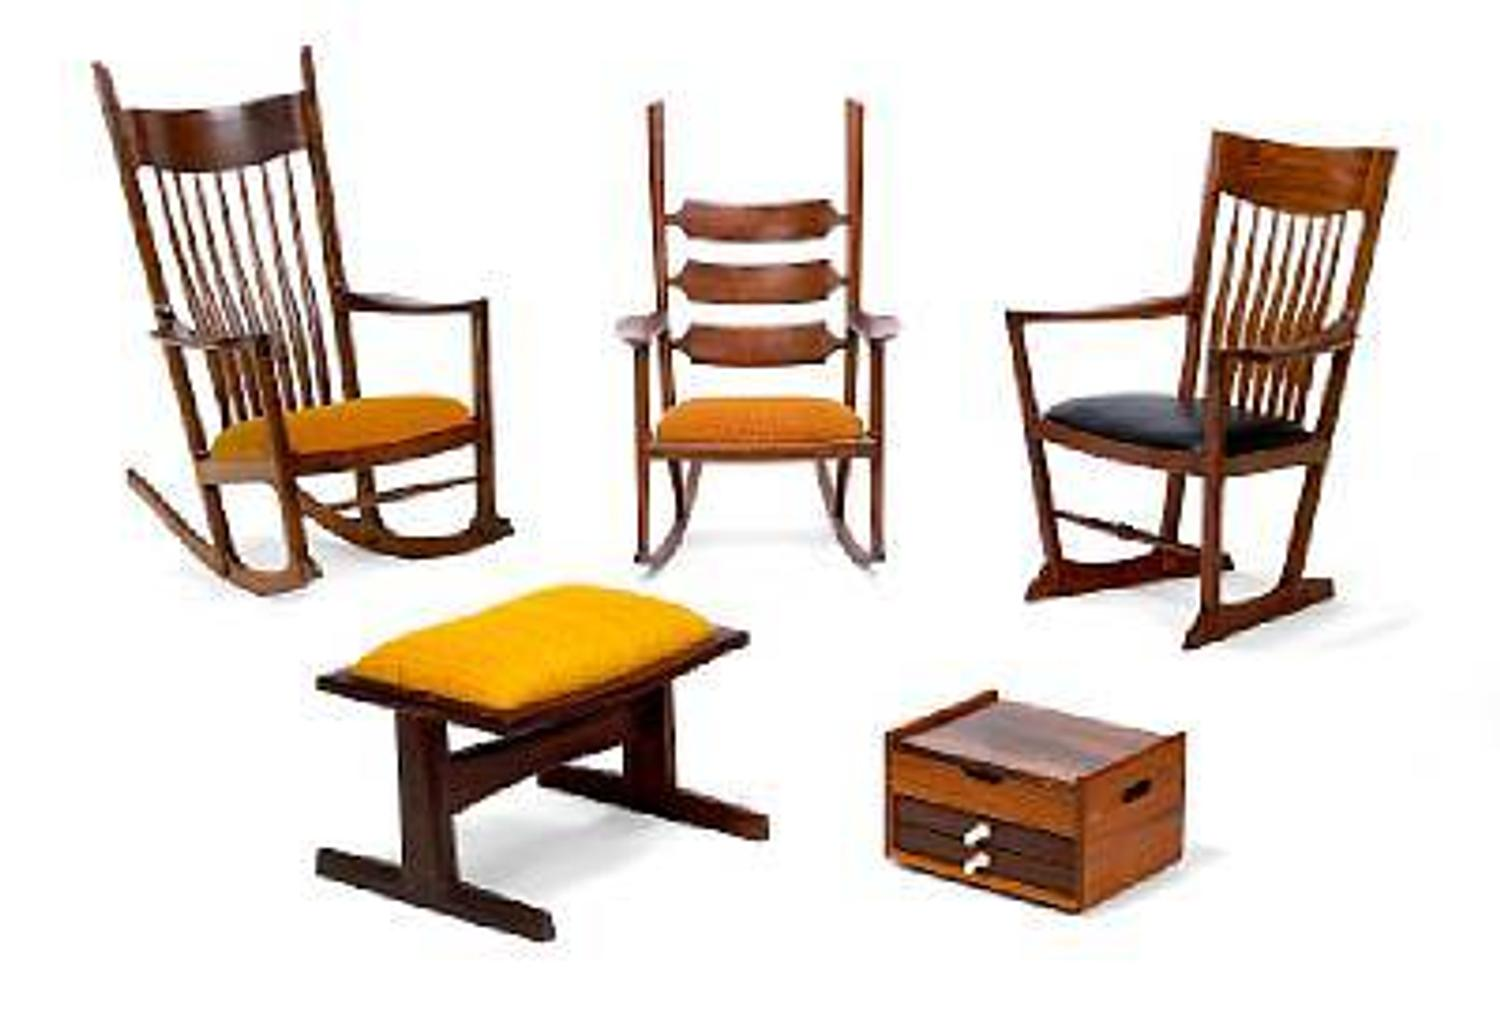 Design of the century personal collection of john nyquist to highlight fall auction of 20th century furniture decorative arts